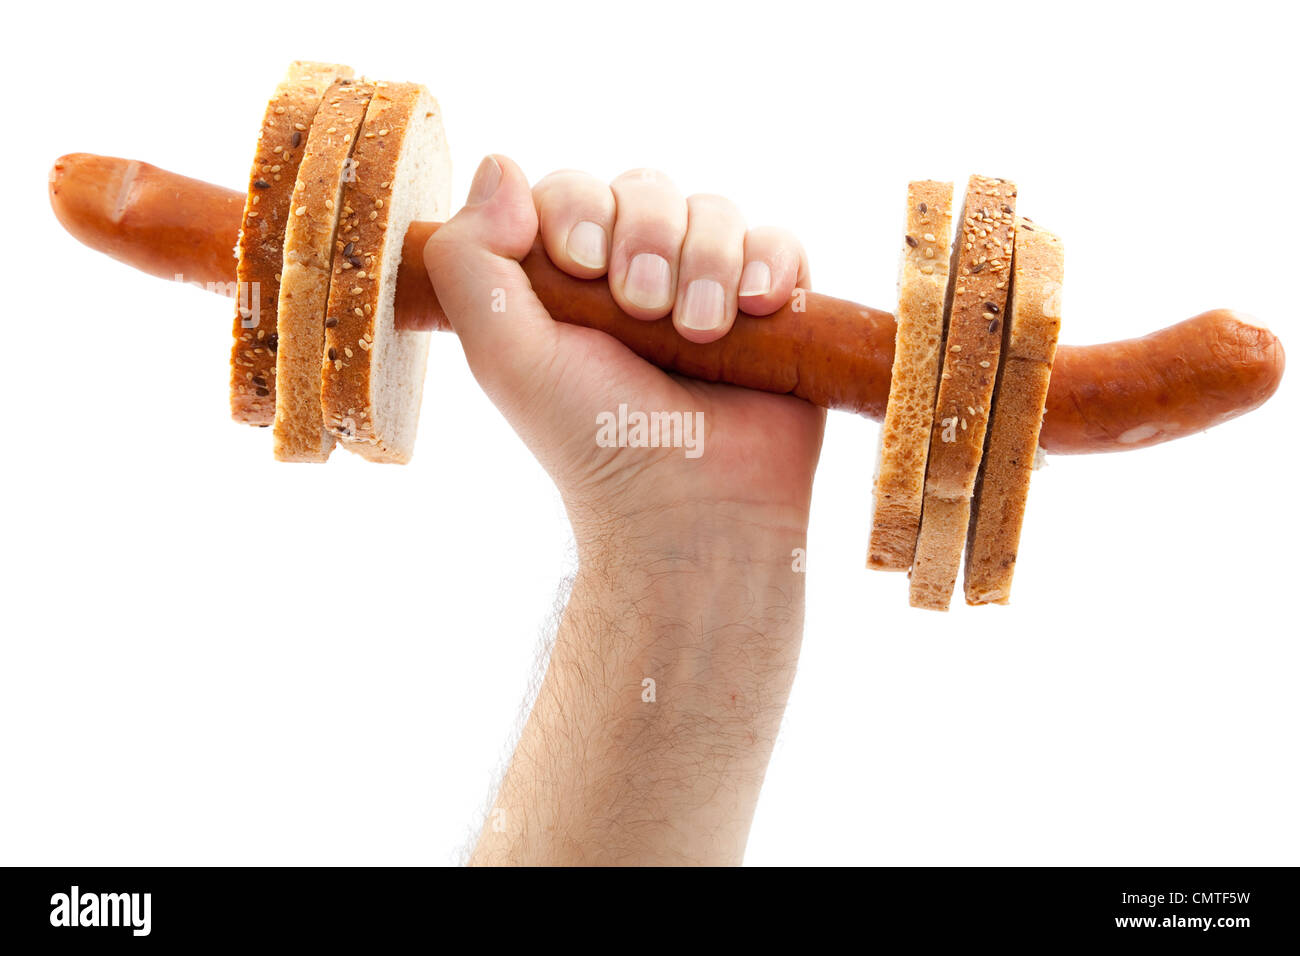 dumbbell made with sausage and bread on white - Stock Image